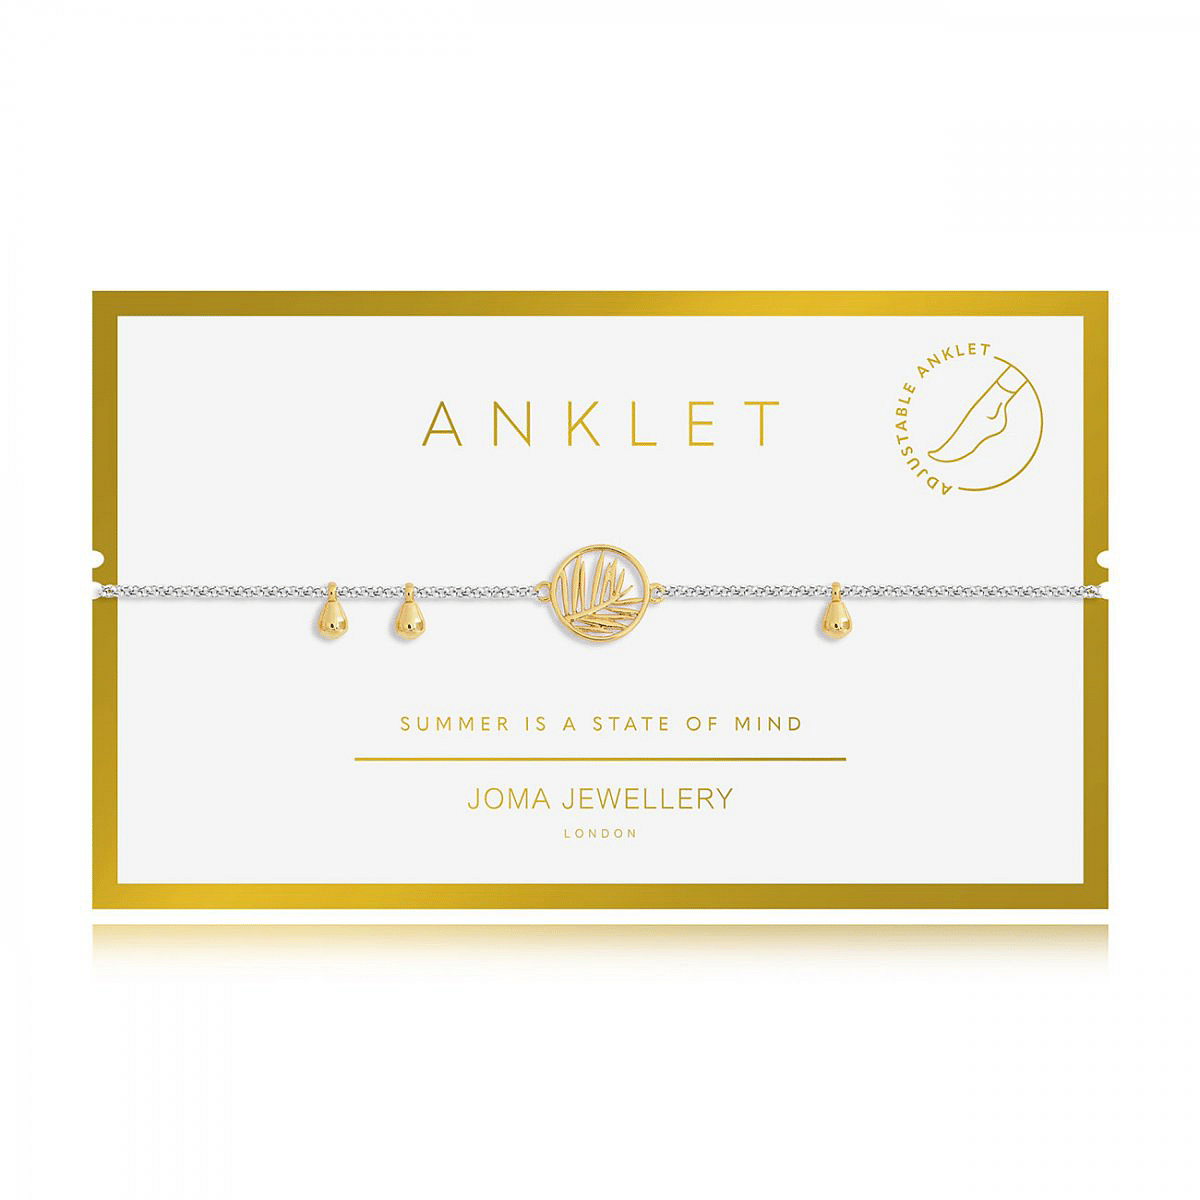 Anklet Gold Palm-joma-jewellery - Cotswold Jewellery